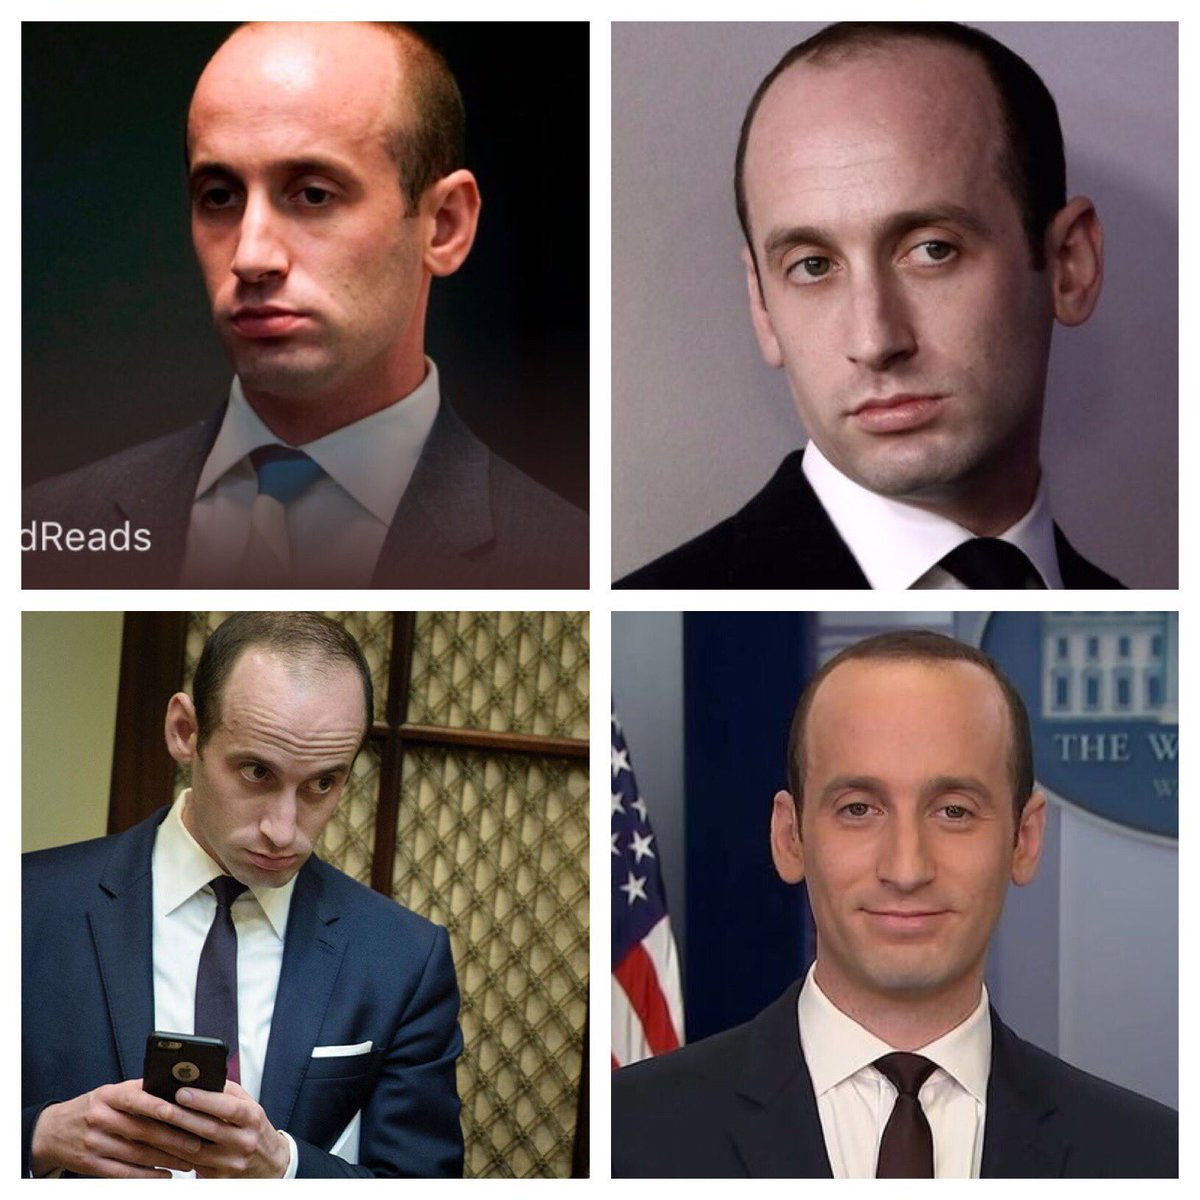 Every Stephen Miller picture looks like he just sucked a lizard into his mouth.